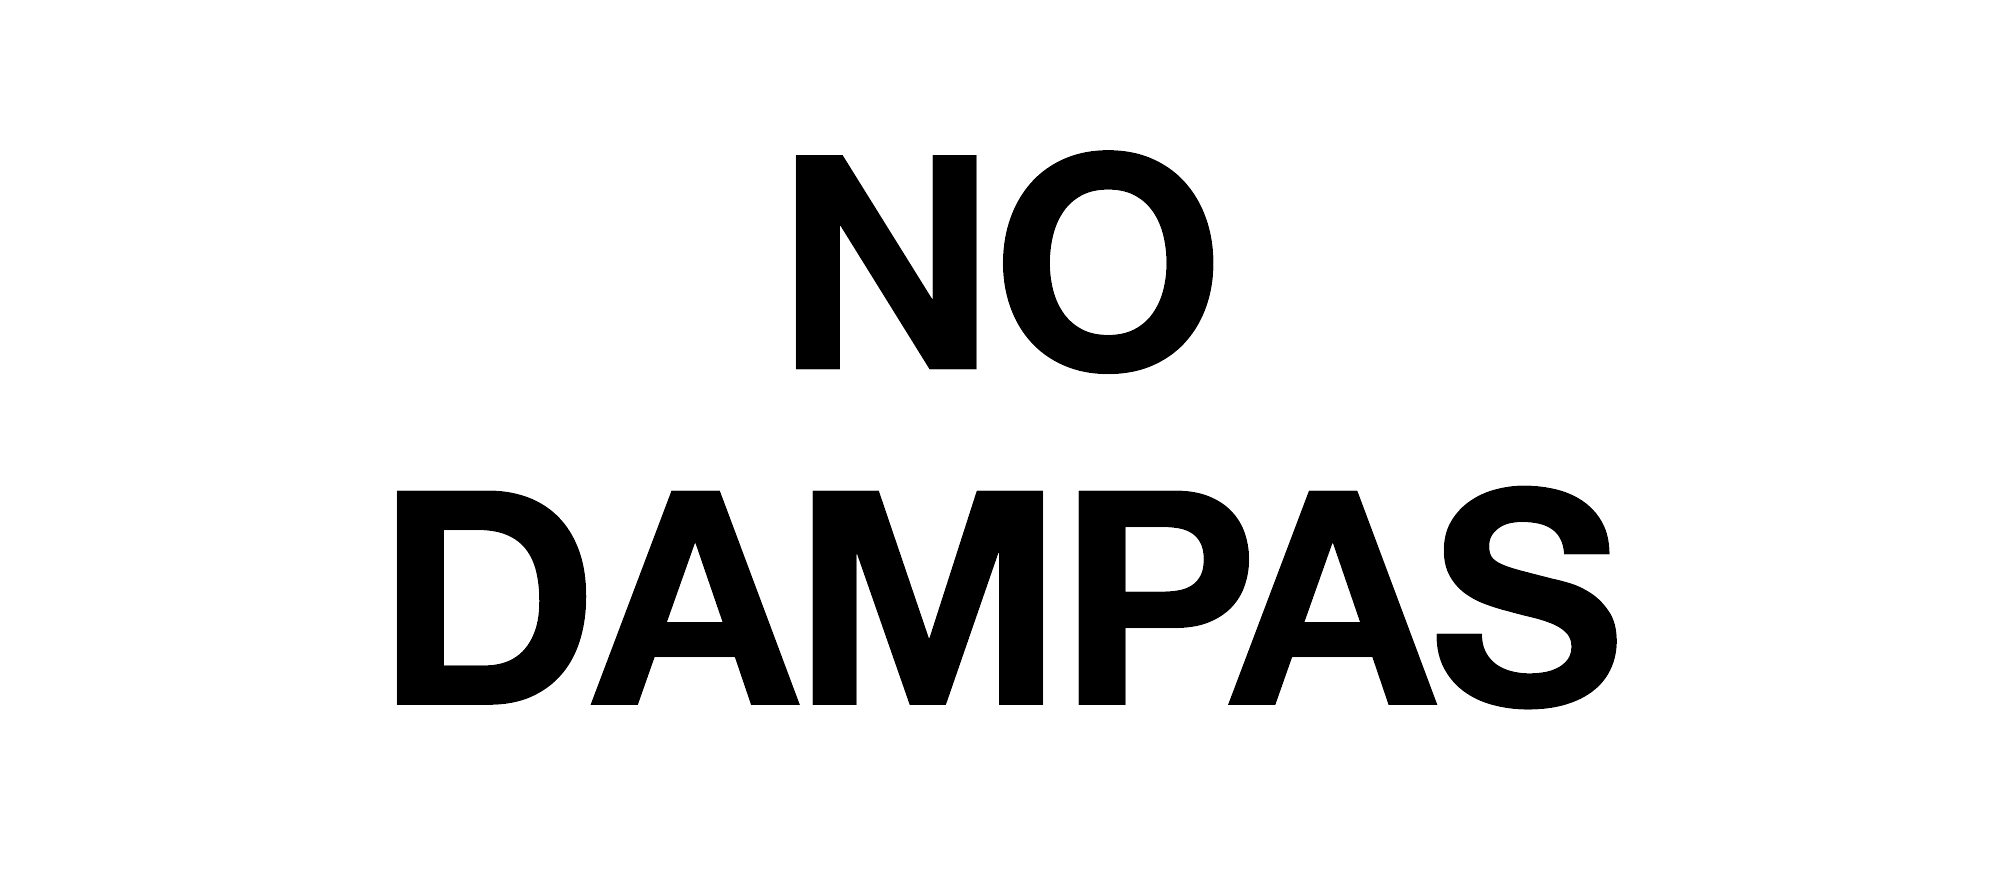 NO DAMPA's Thanks